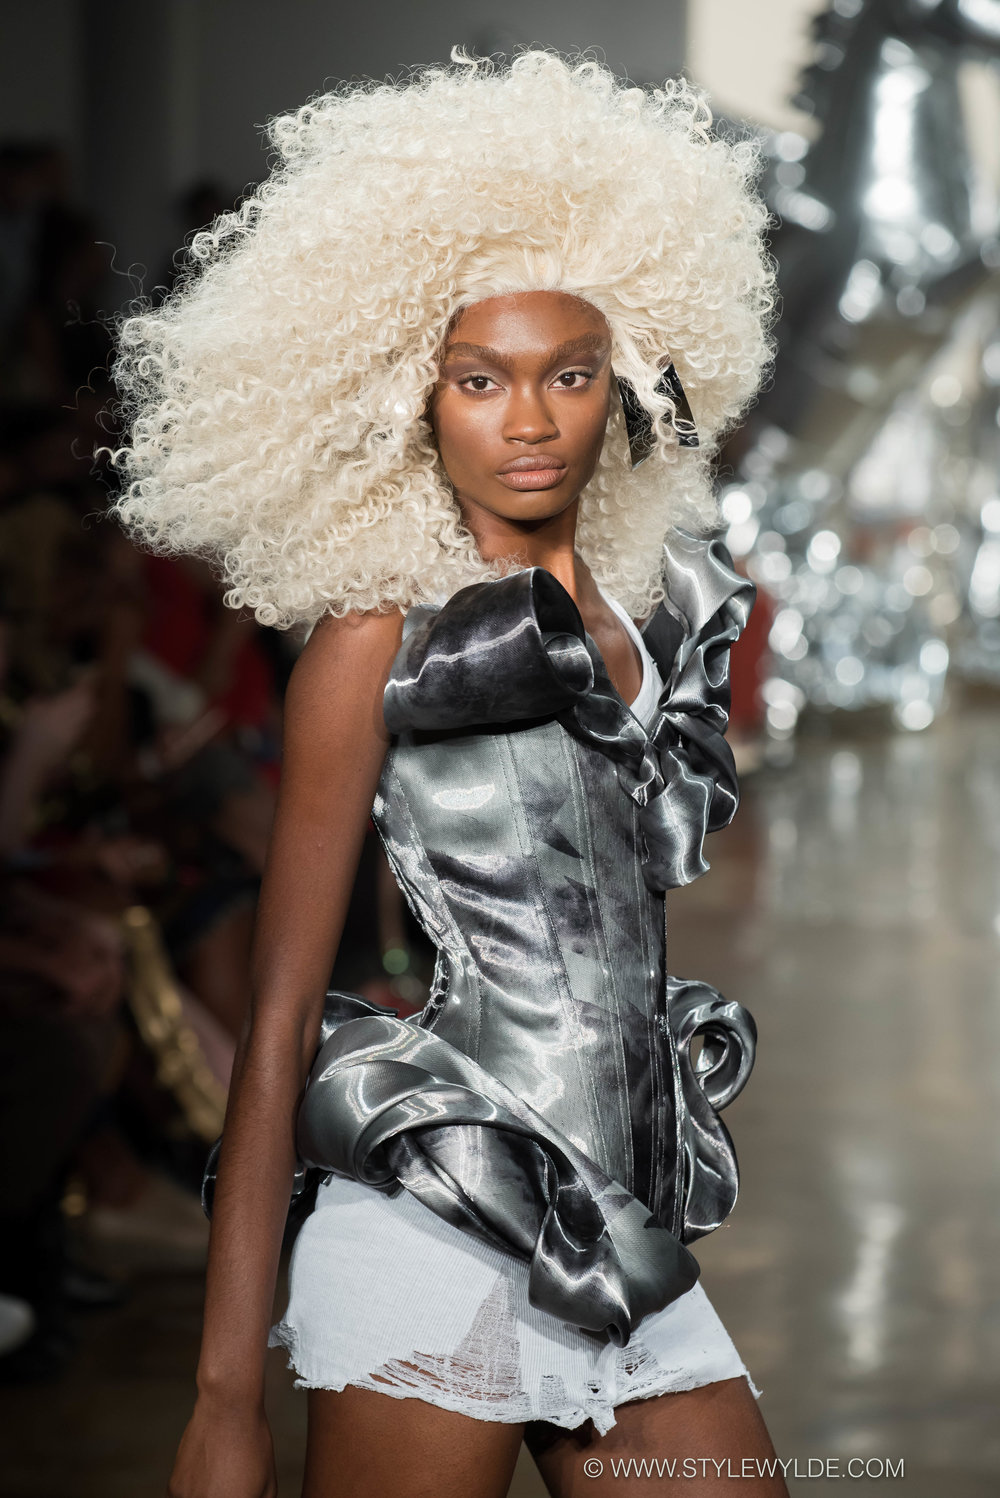 stylewylde-The Blonds SS17-FOH- Edits-39.jpg